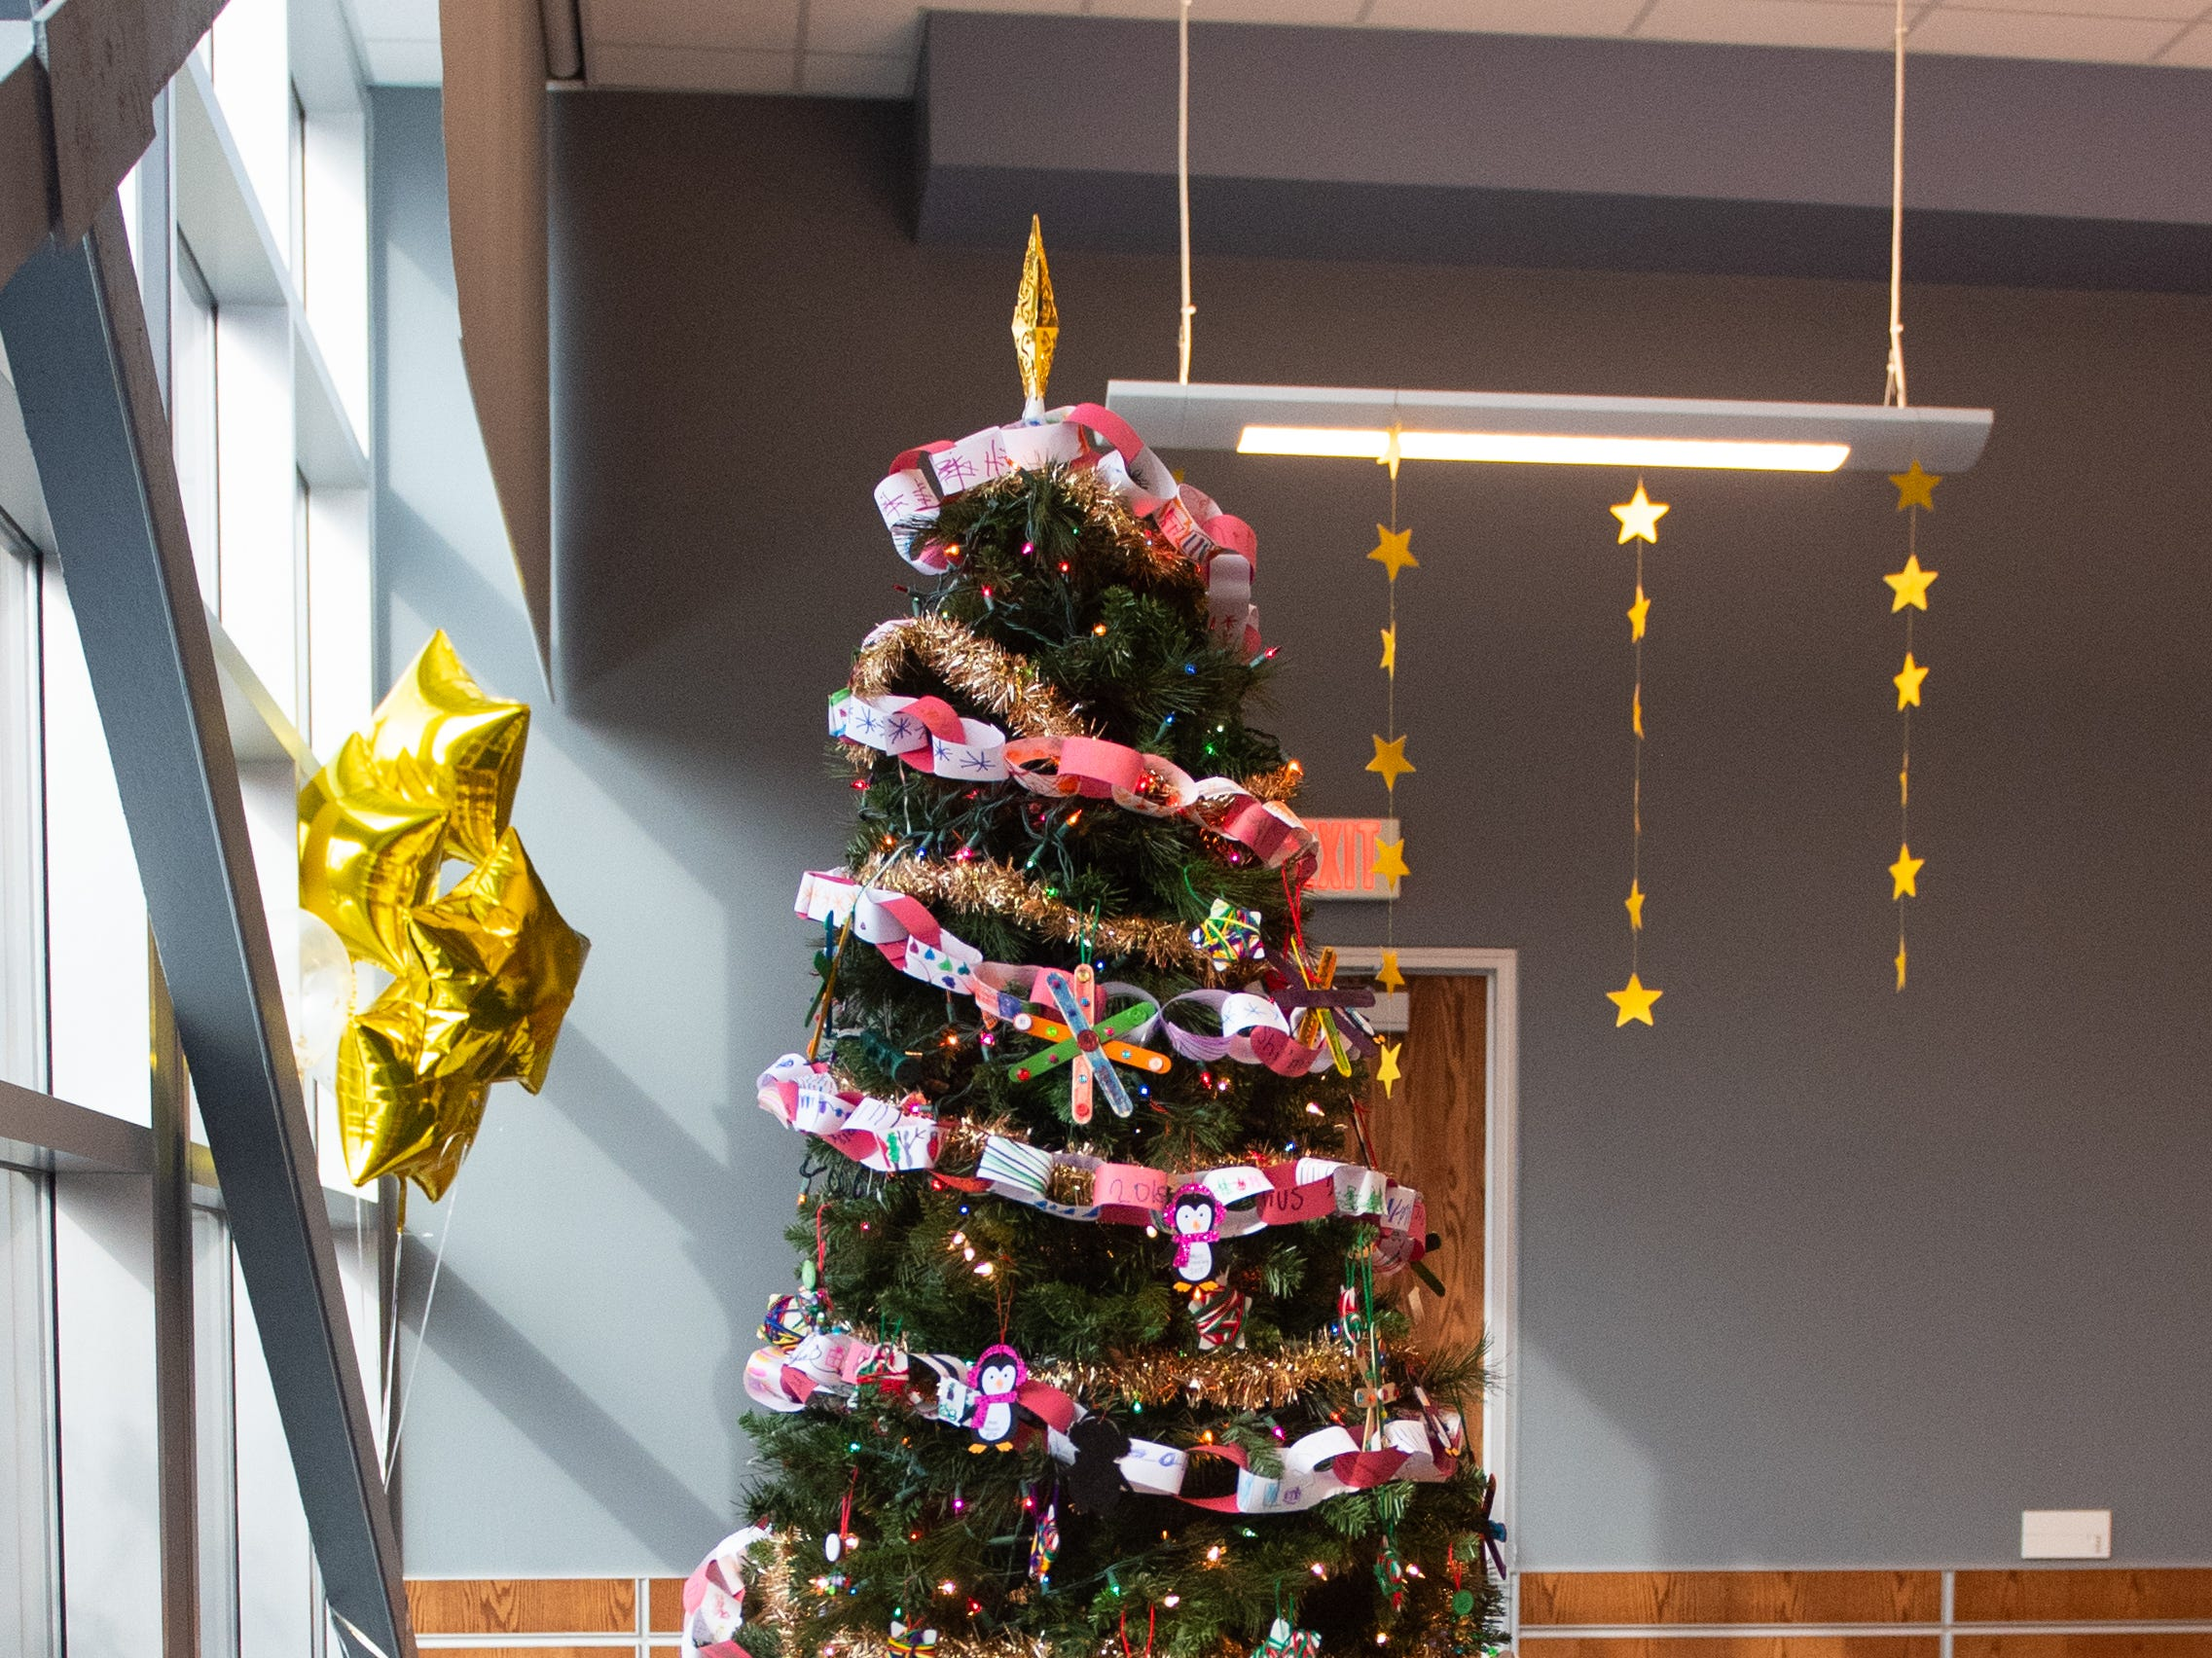 The Christmas tree at the back of the room is a popular site for pictures during the city of York's Shining Star Teacher Luncheon at the School District building, December 6, 2018.